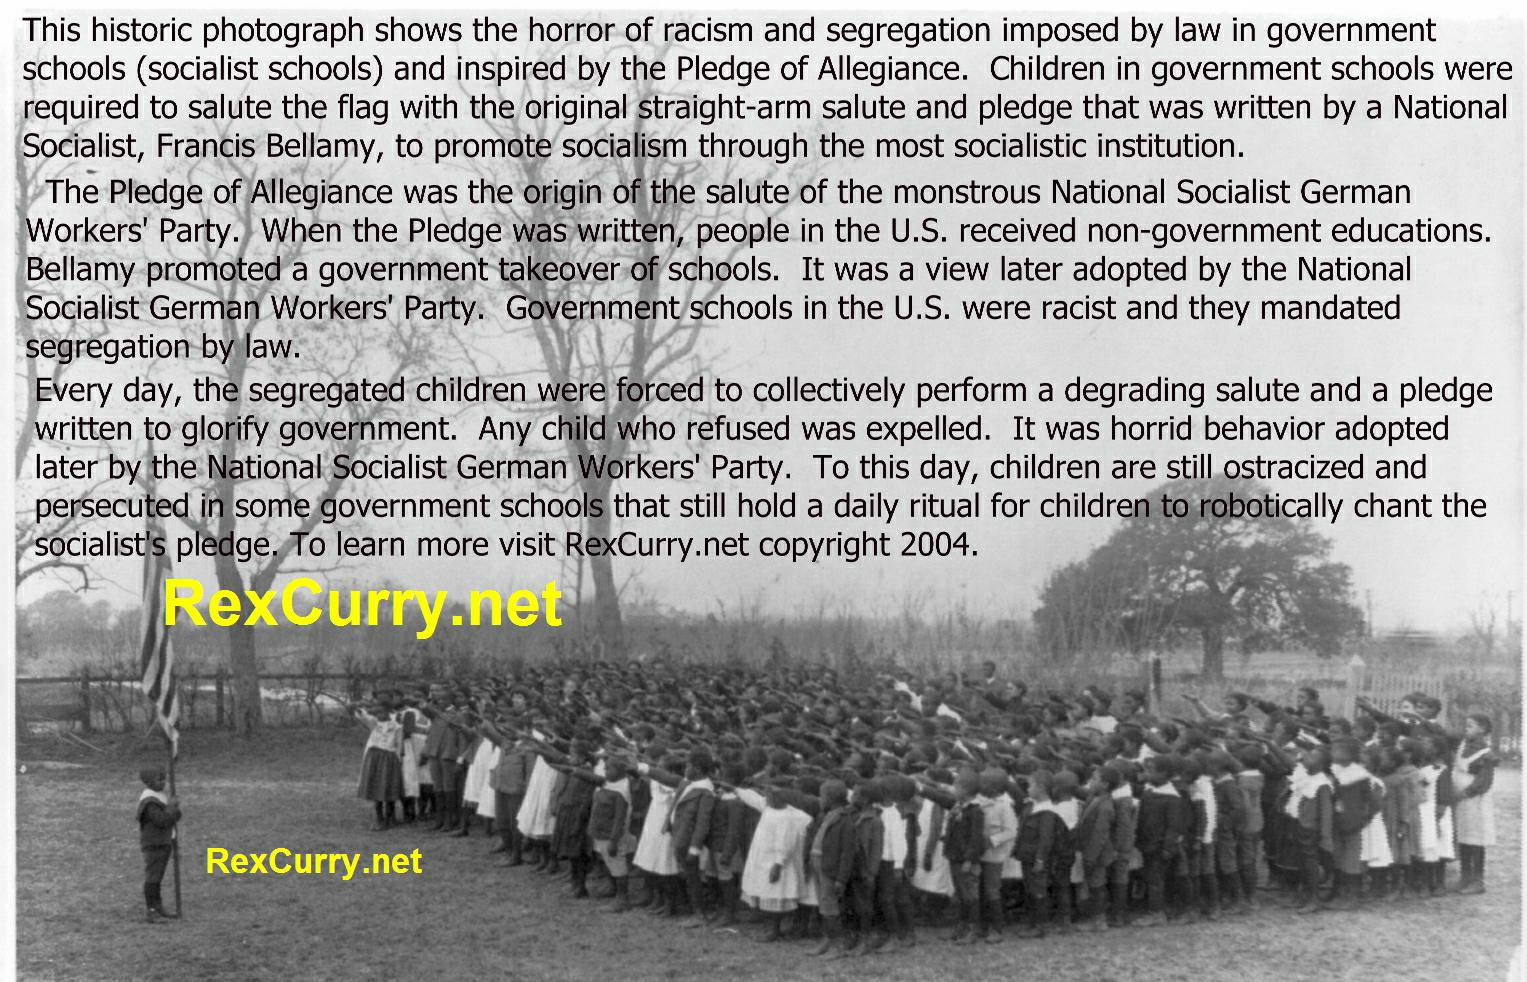 NARCO DOGS IN SCHOOLS, Pledge of Allegiance, Francis Bellamy, Edward Bellamy, Industrial Army, Military Socialism